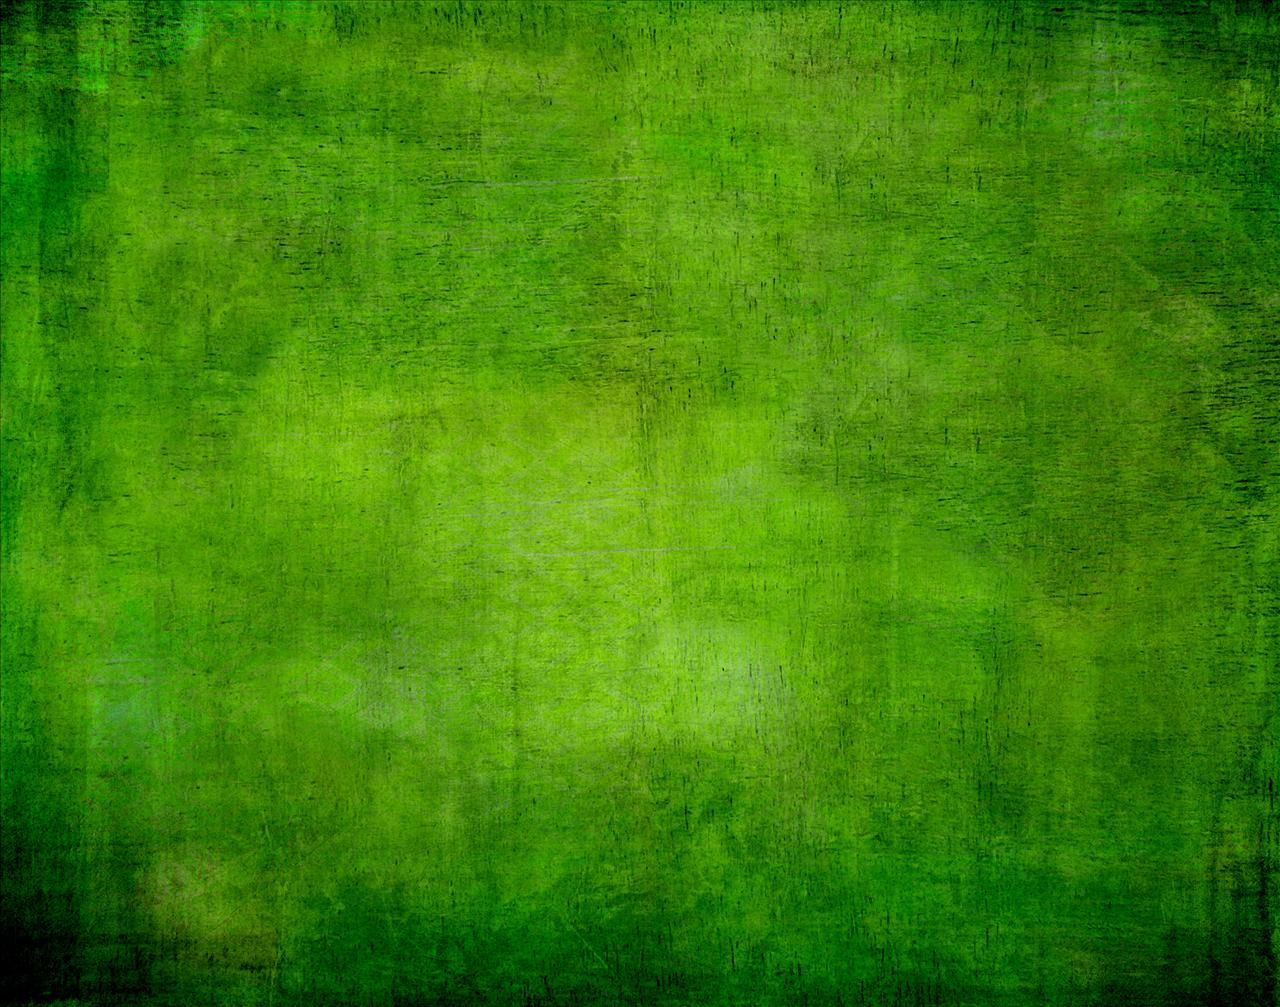 emerald abstract background hd wallpapers LOGO